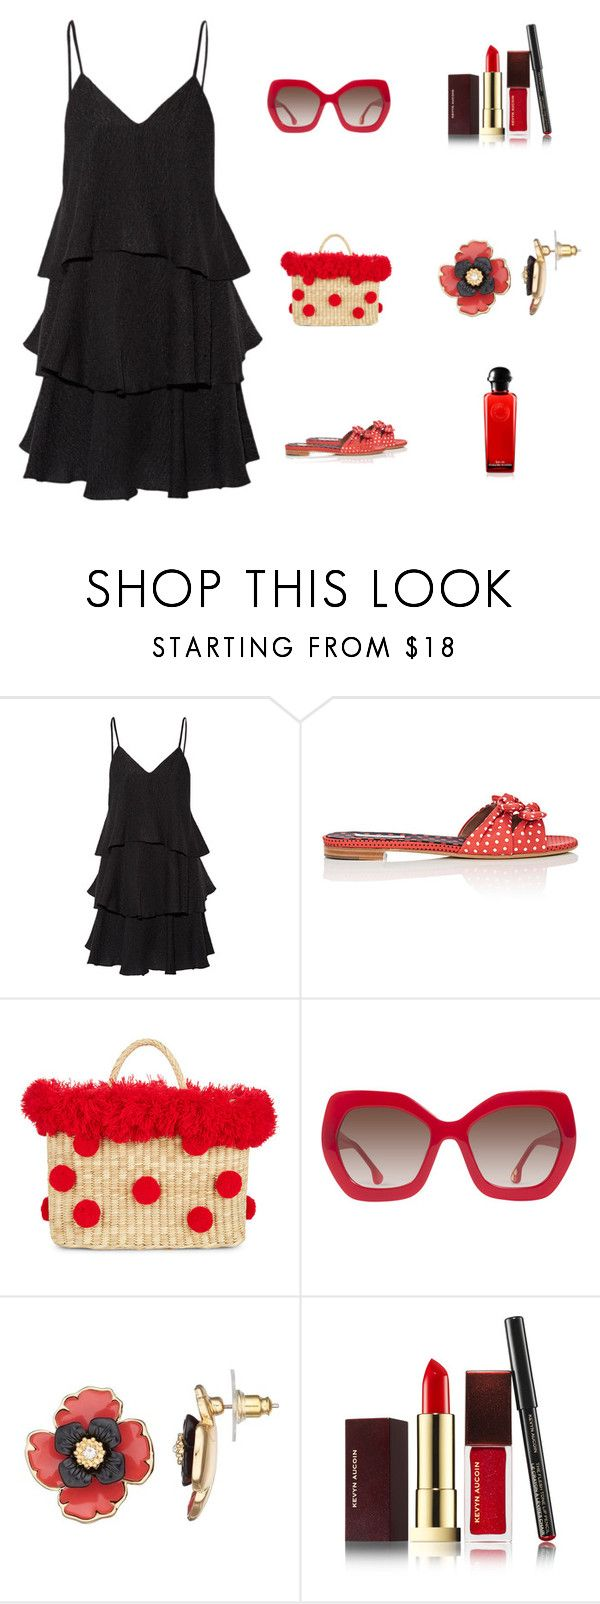 """Black with Red Accessories"" by scolab ❤ liked on Polyvore featuring Paul & Joe, Tabitha Simmons, Nannacay, Alice + Olivia, Dana Buchman and Kevyn Aucoin"